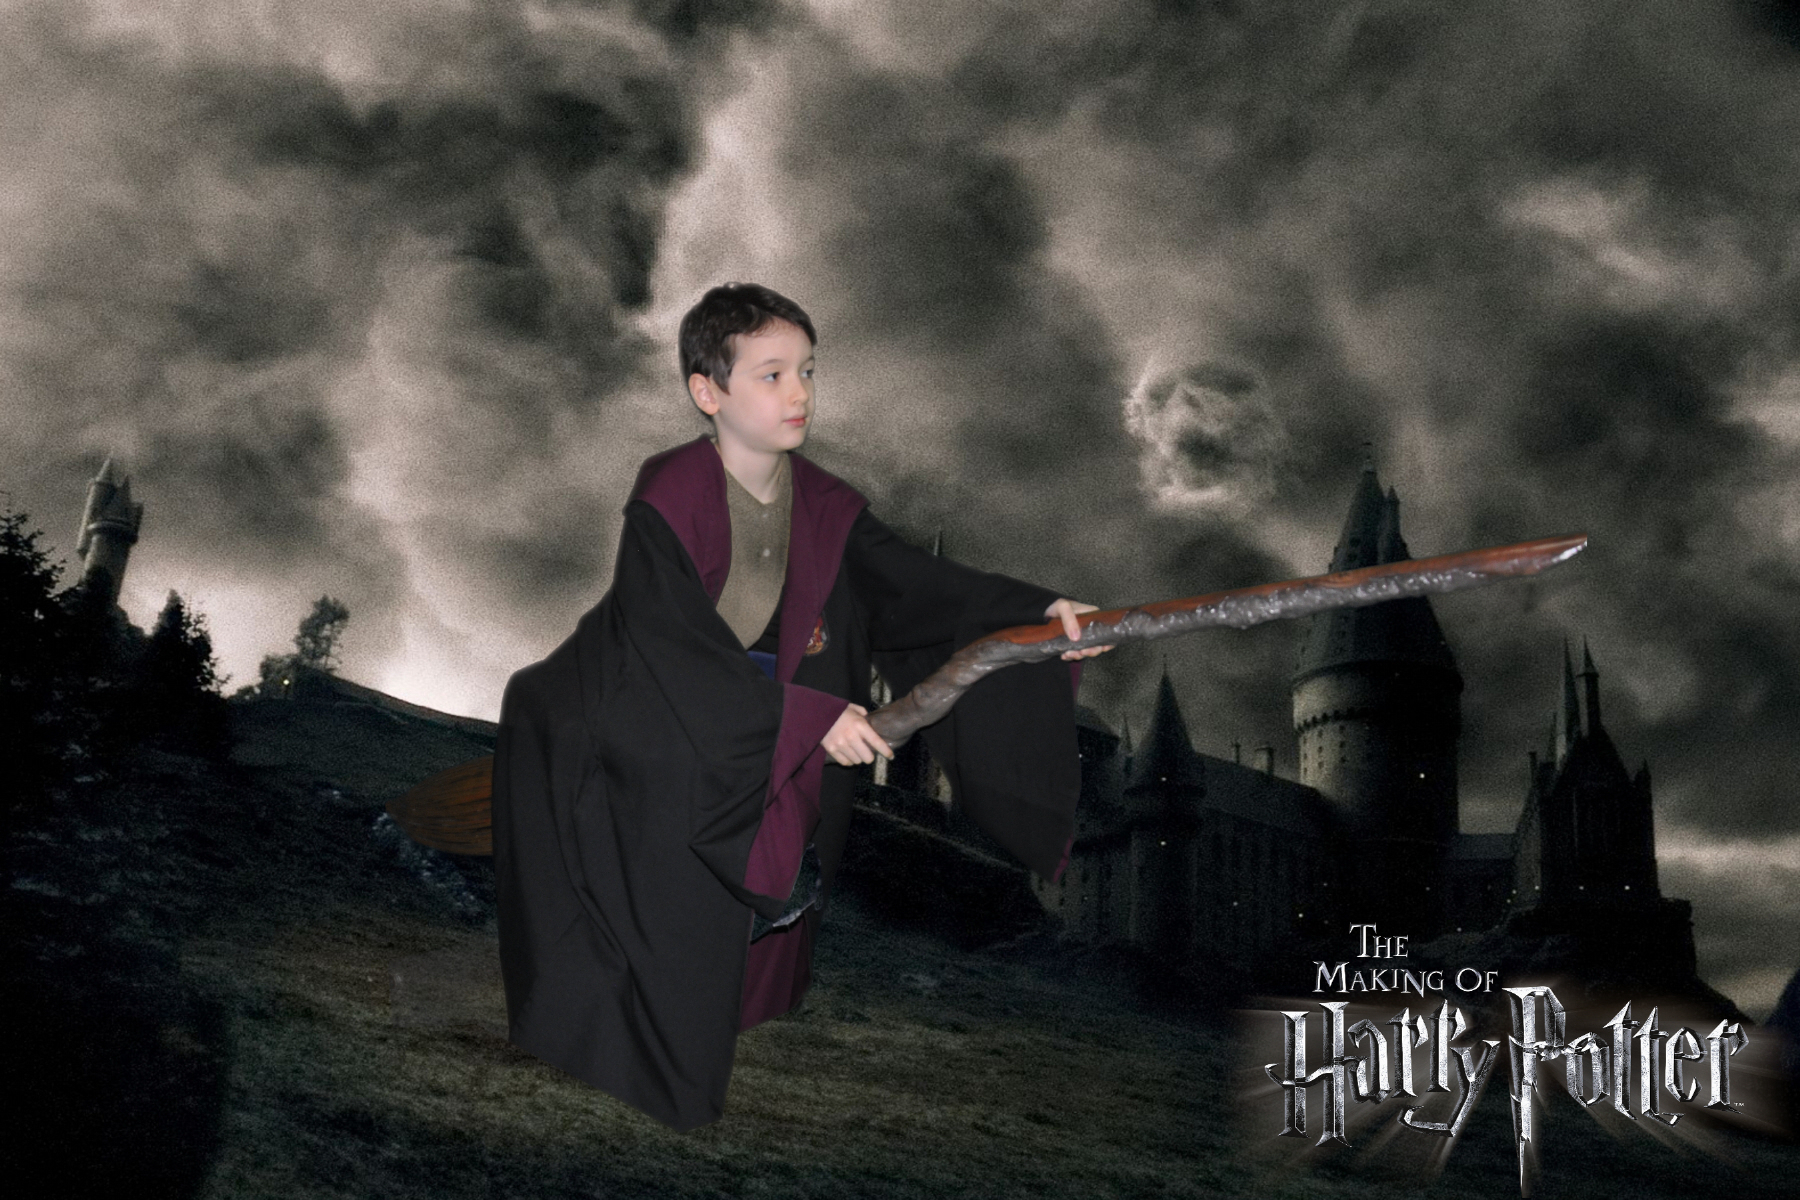 Riding a Broomstick, Harry Potter Studio Tour Review